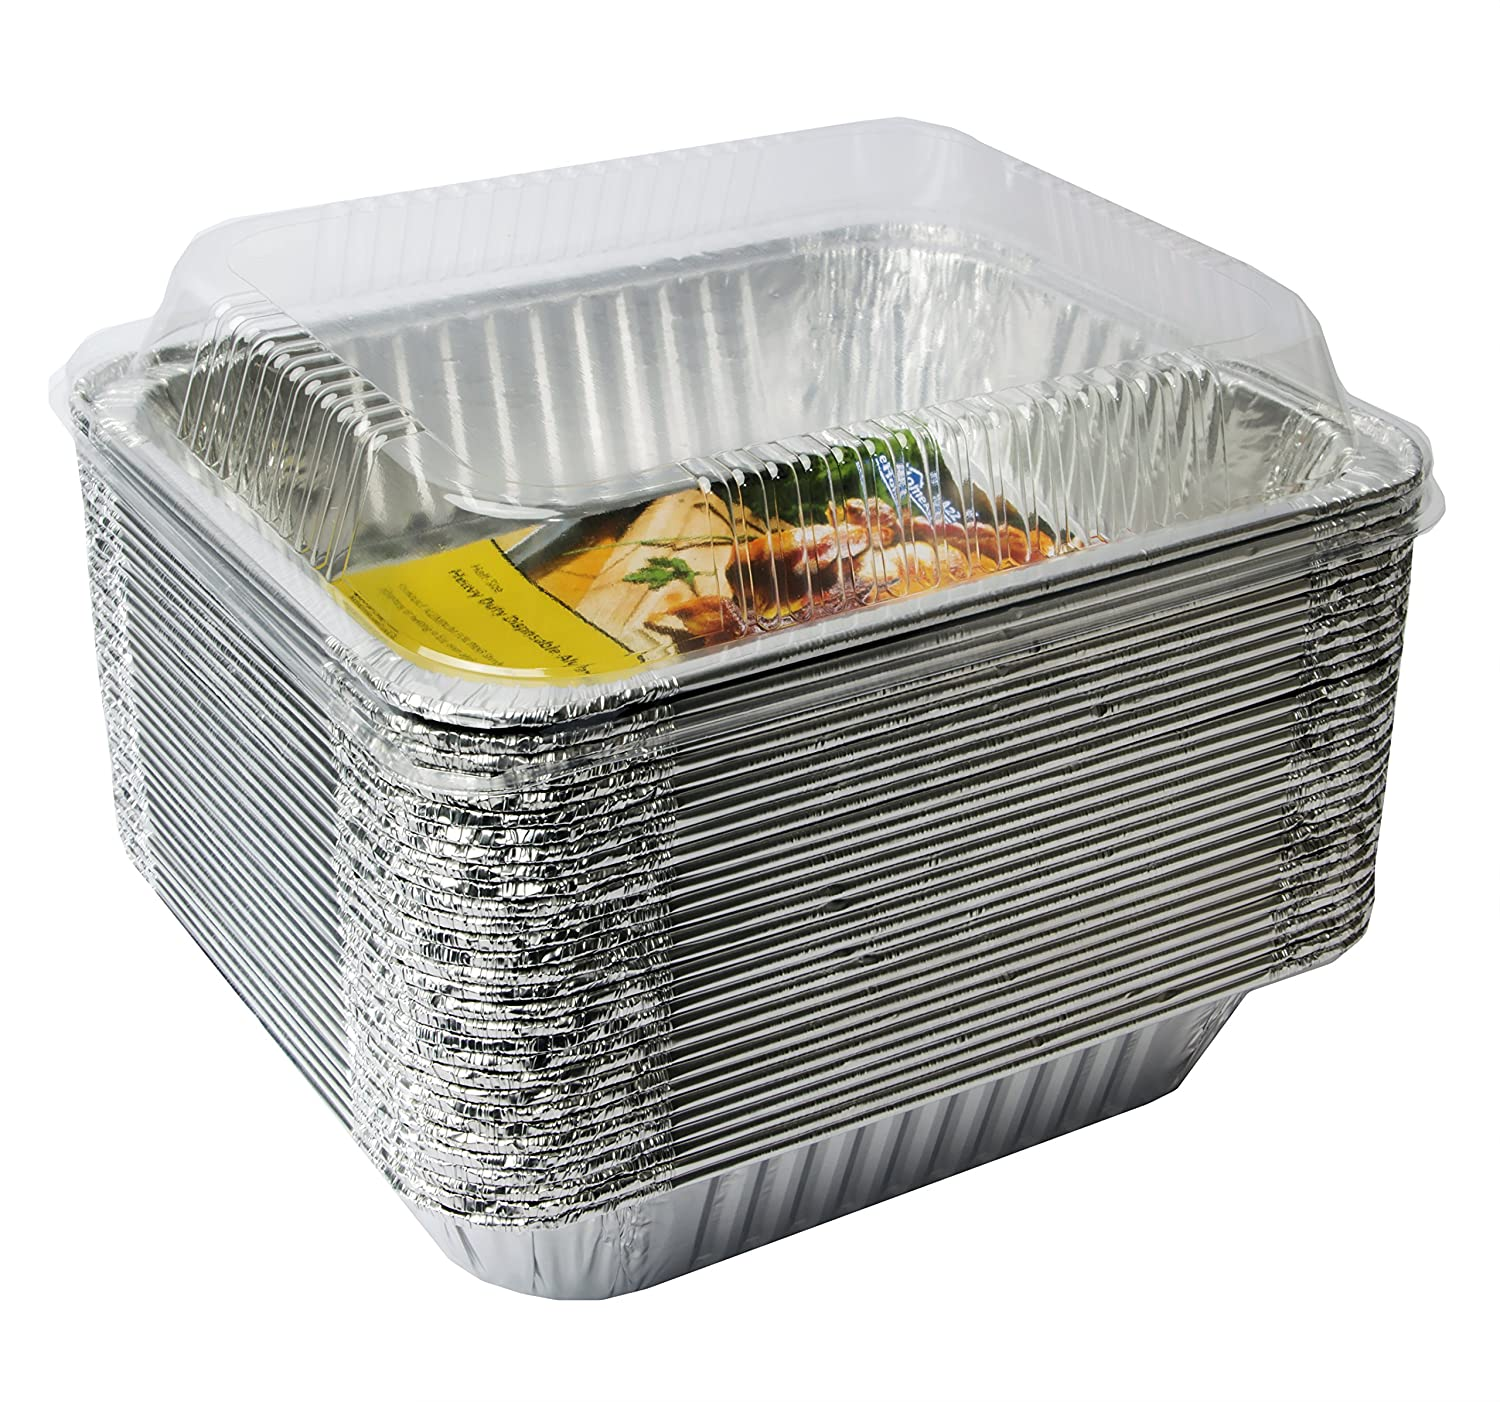 (10, Half Size) - eHomeA2Z (10 Pack) Heavy Duty Half Size Deep Disposable Aluminium Foil Steam Table Pans for Cooking, Roasting, Broiling, Baking - 23cm x 33cm (10, Half Size) B077BKR6T9 Half Size|10  Half Size